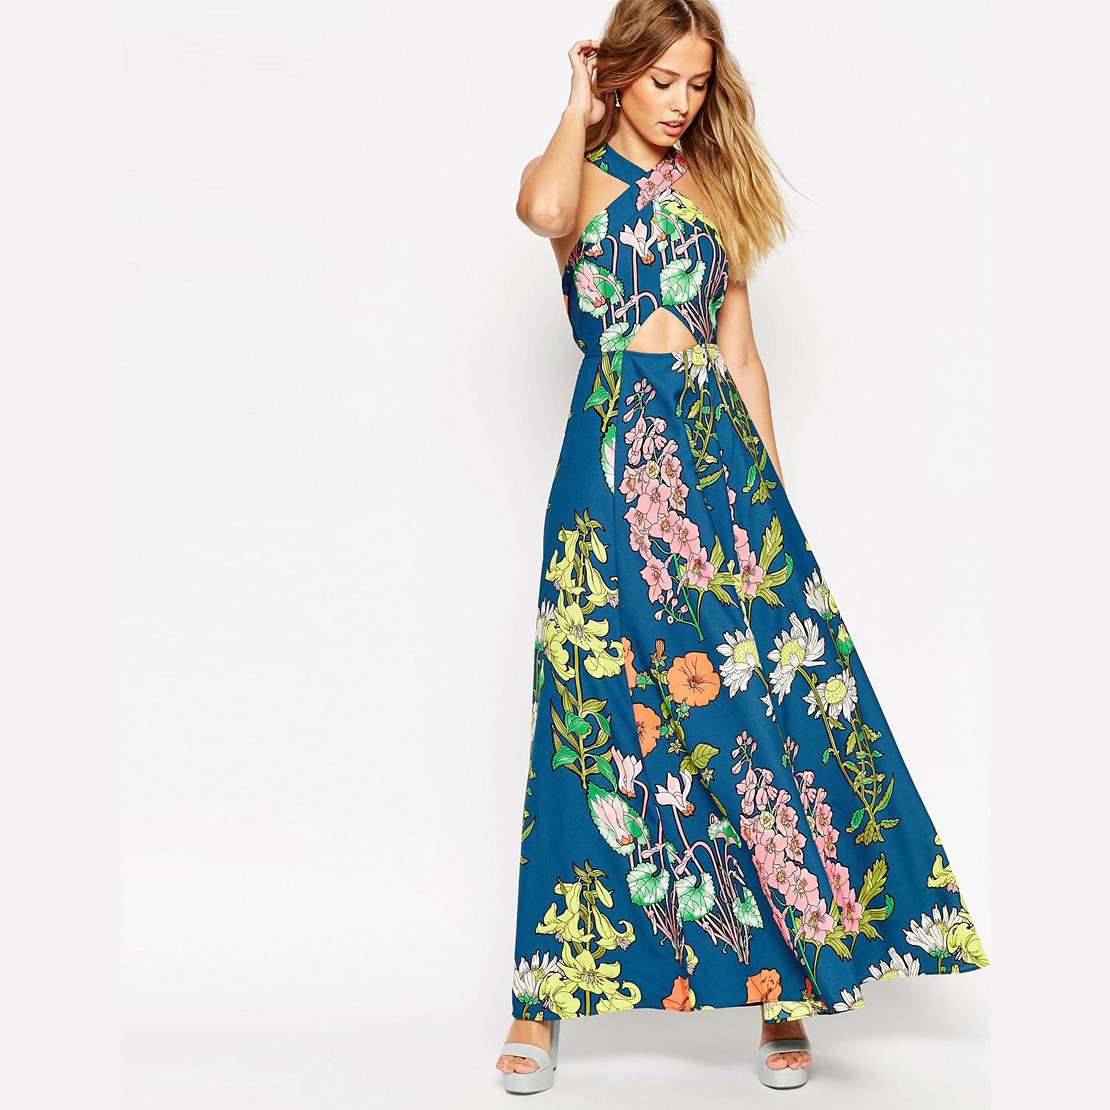 New Fashion 2015 Summer Style Maxi Women Dress Casual Off The Shoulder Sleeveless Long Dress